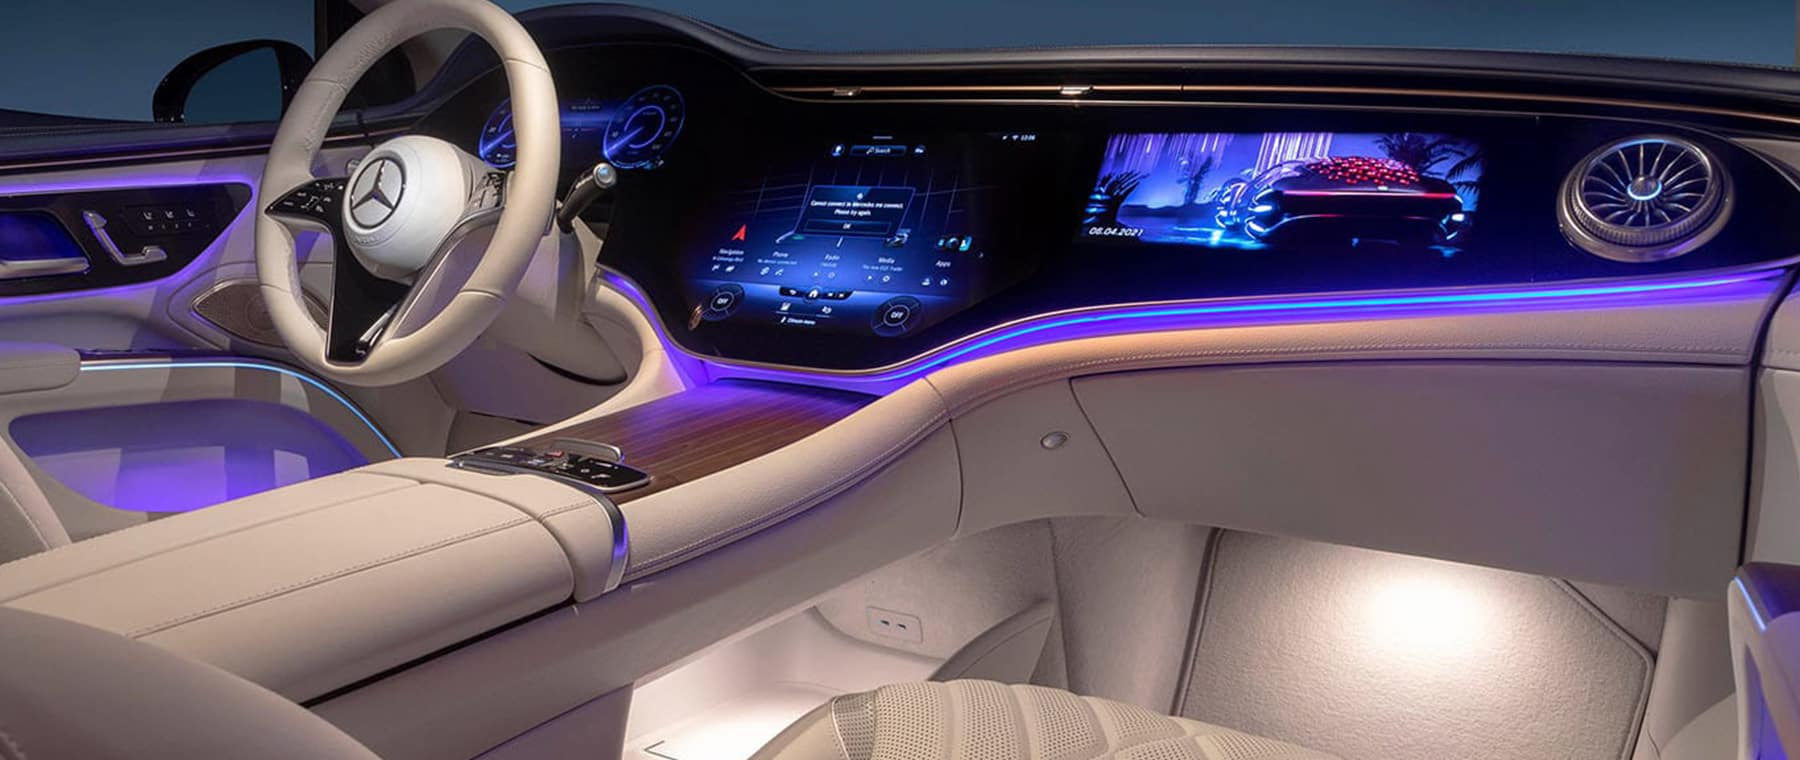 The All New 2022 EQS Interior